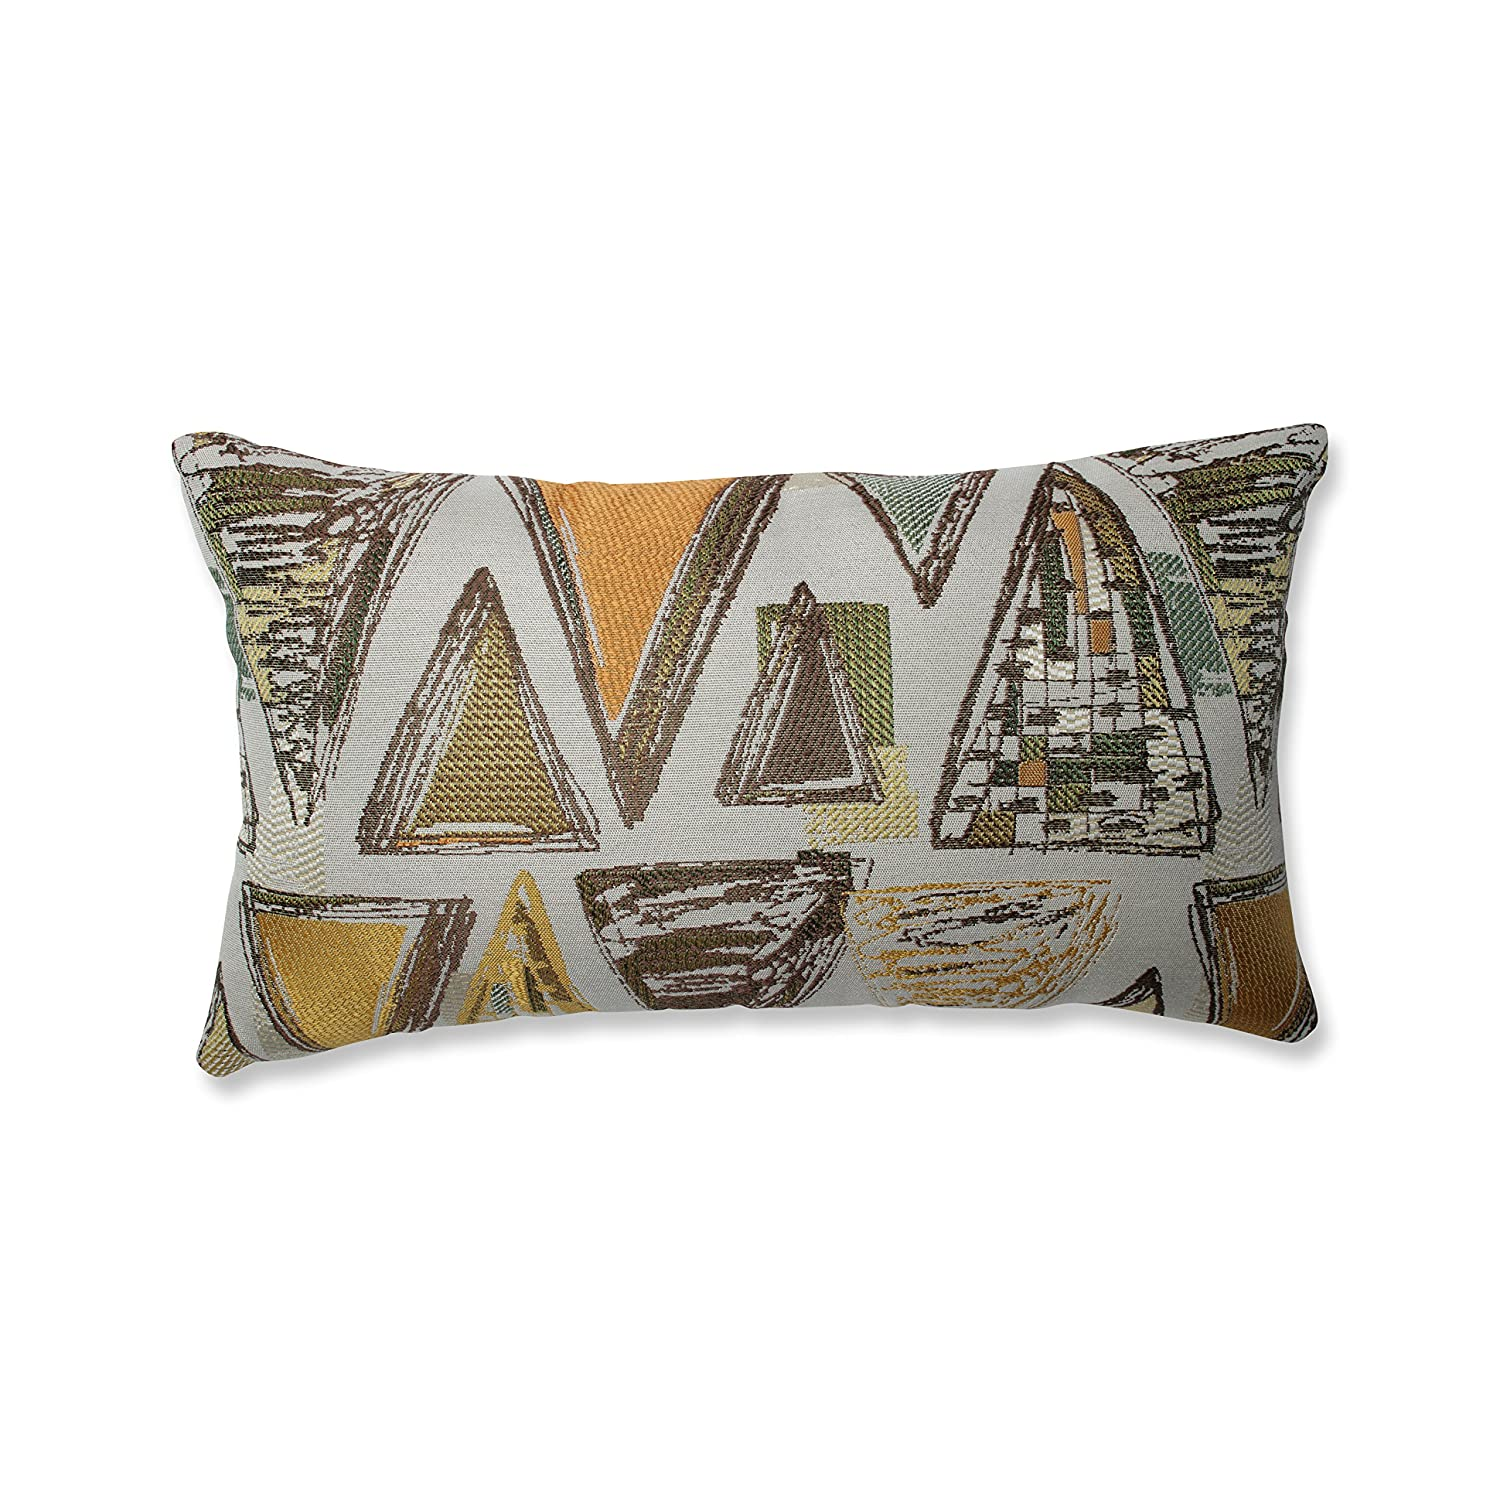 Pillow Perfect Triangle Tapestry Multi Floor Pillow 24.5-inch Green